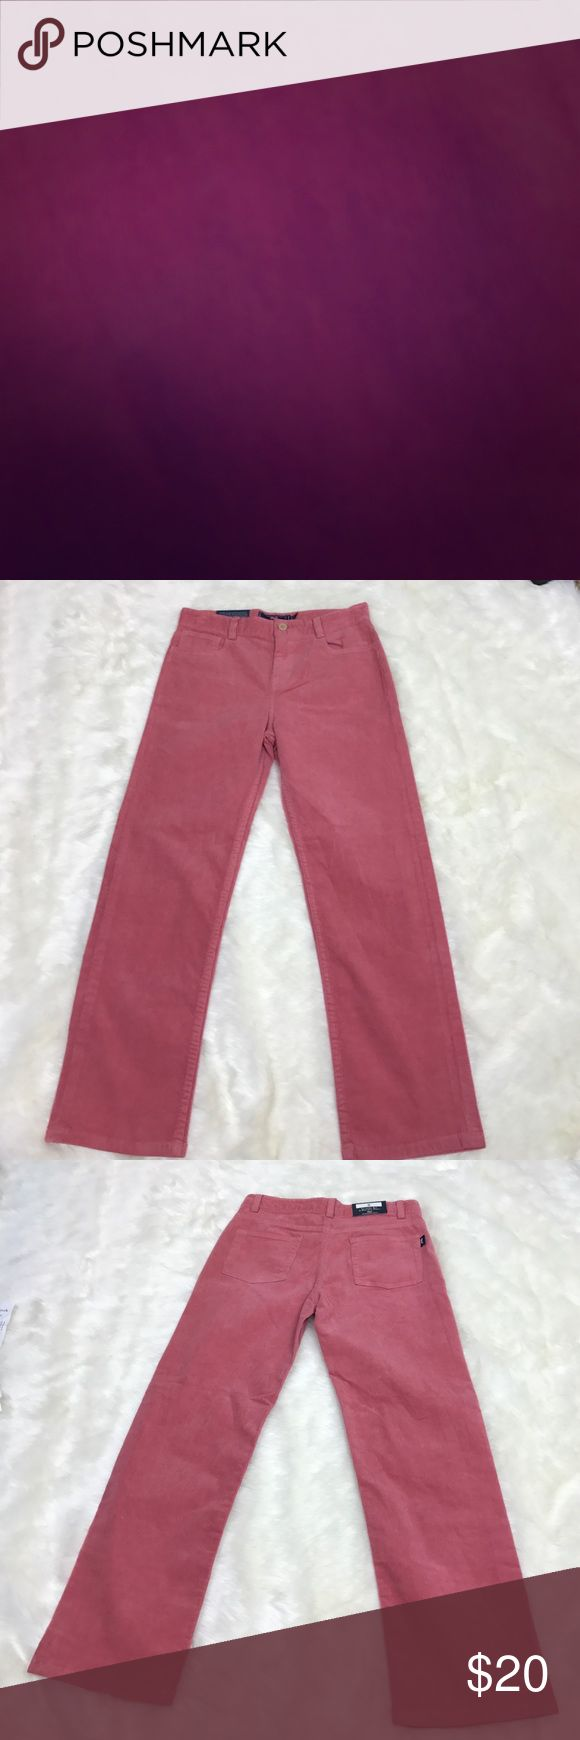 Vineyard Vines 5 Pocket Pant Please feel free to ask any questions, bundle, or make an offer. Vineyard vines classic 5 pocket corduroy pant in salmon color. Size 8 in boys. New with tag. Vineyard Vines Bottoms Jeans